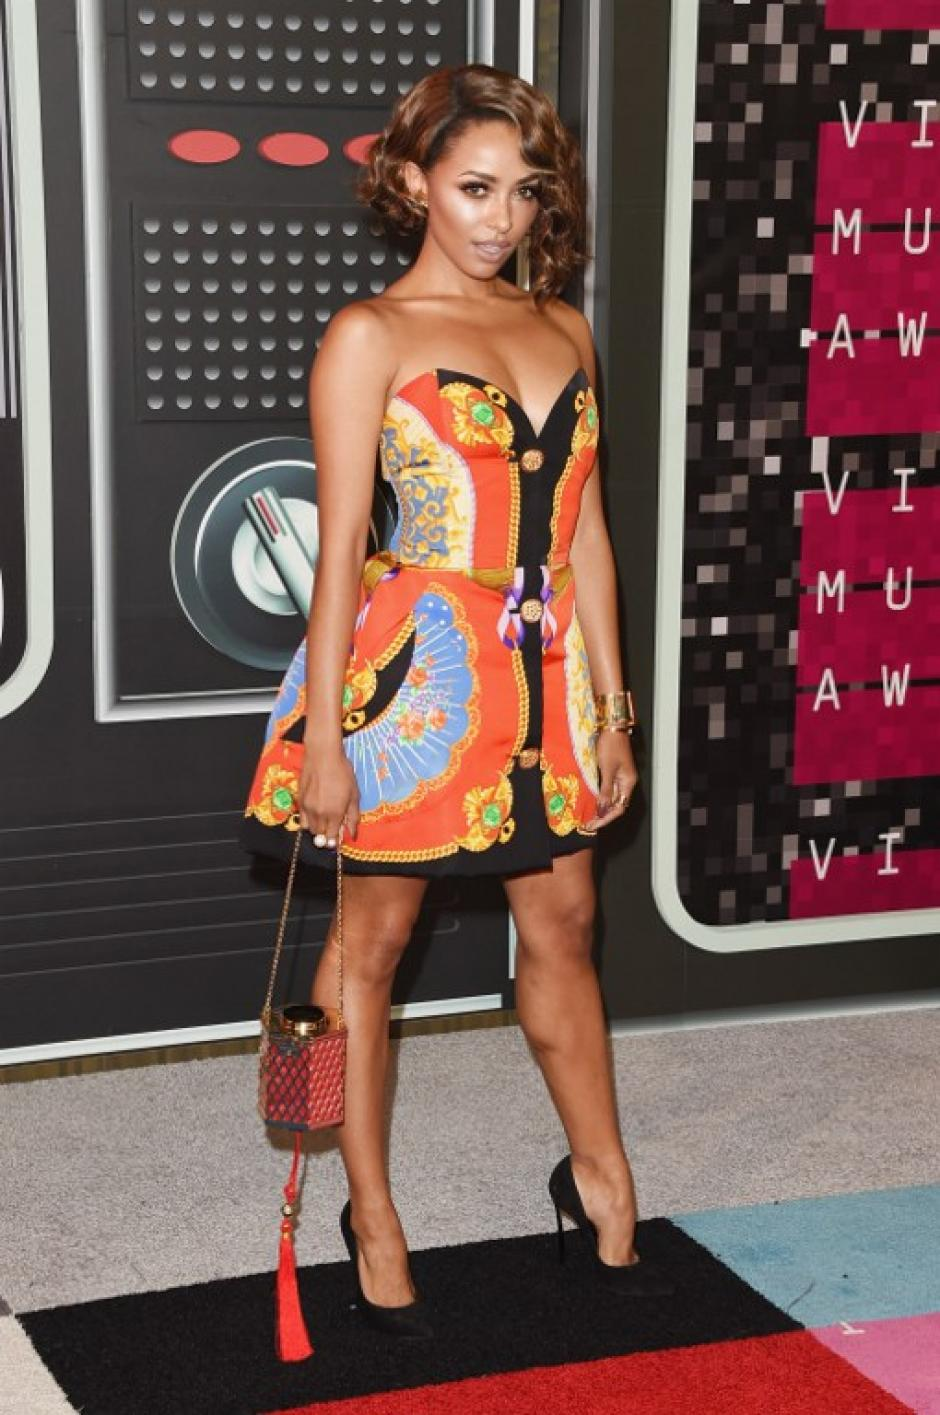 La actriz Kat Graham asiste a los 2015 MTV Video Music Awards. (Foto: AFP)